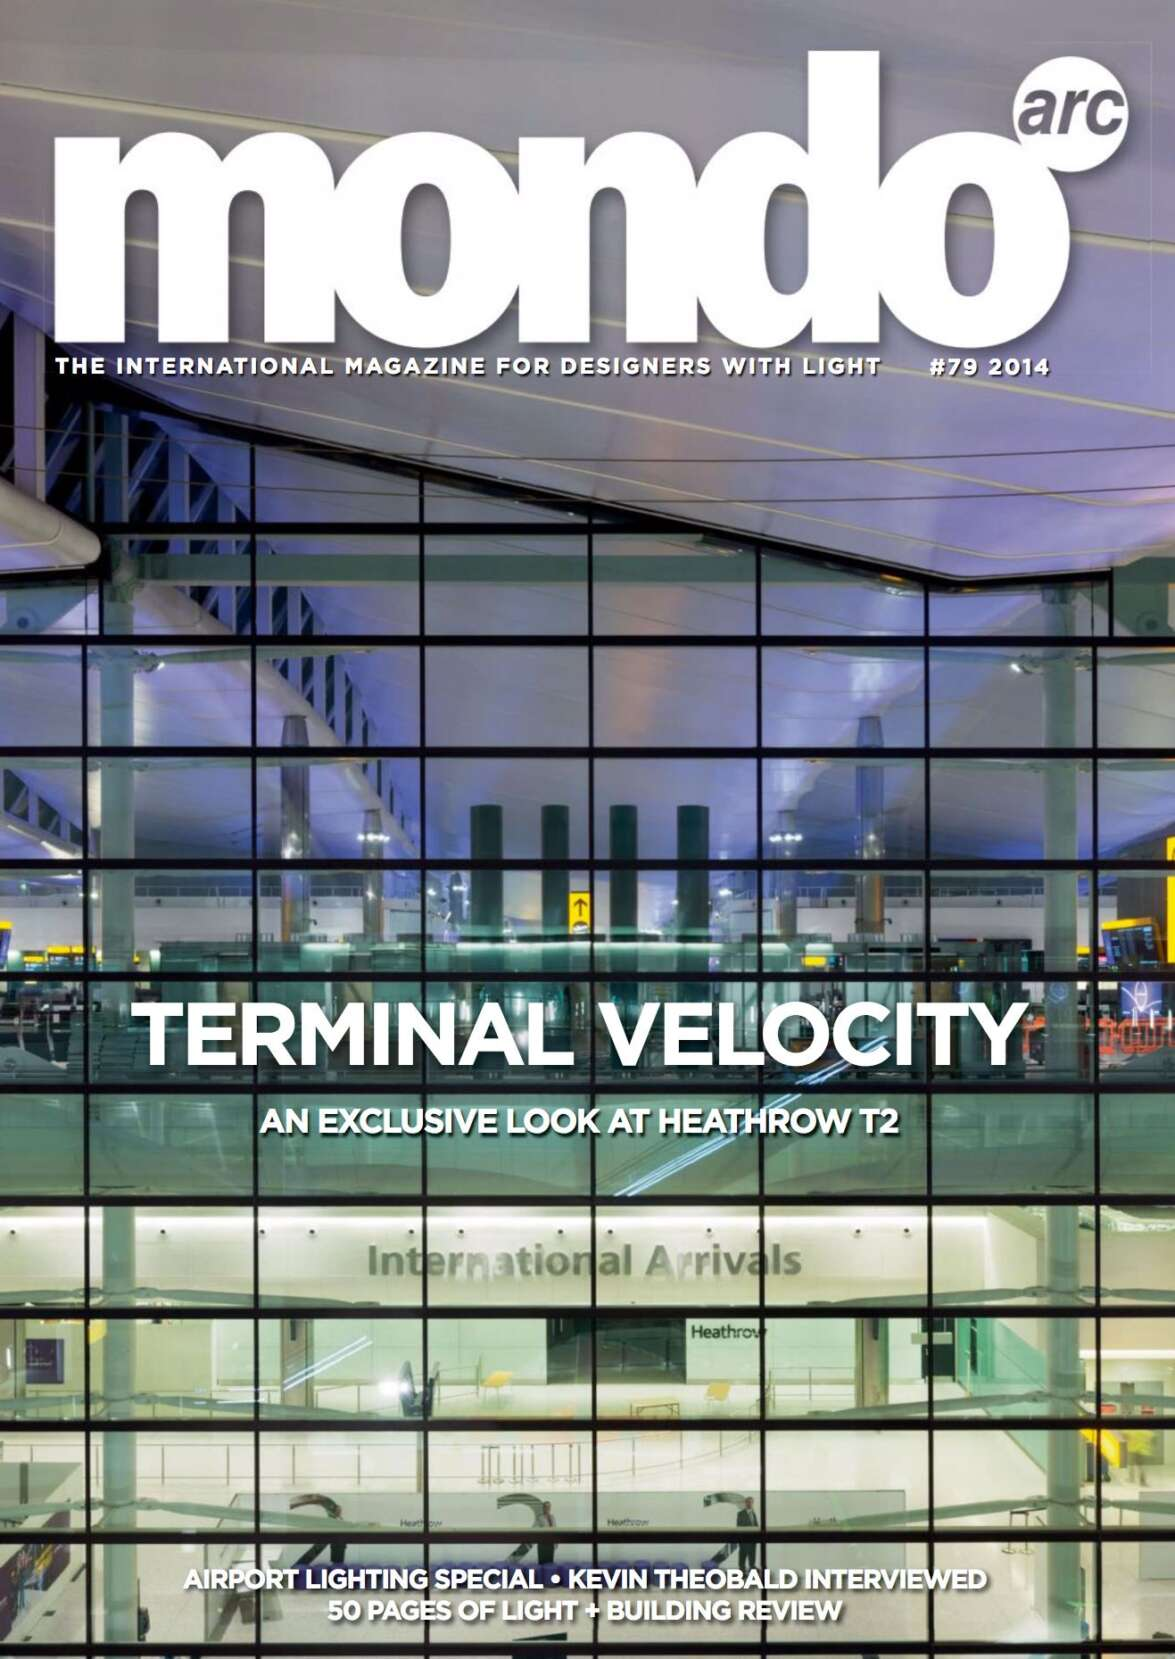 Our Heathrow Terminal 2 project on the front of Mondo arc